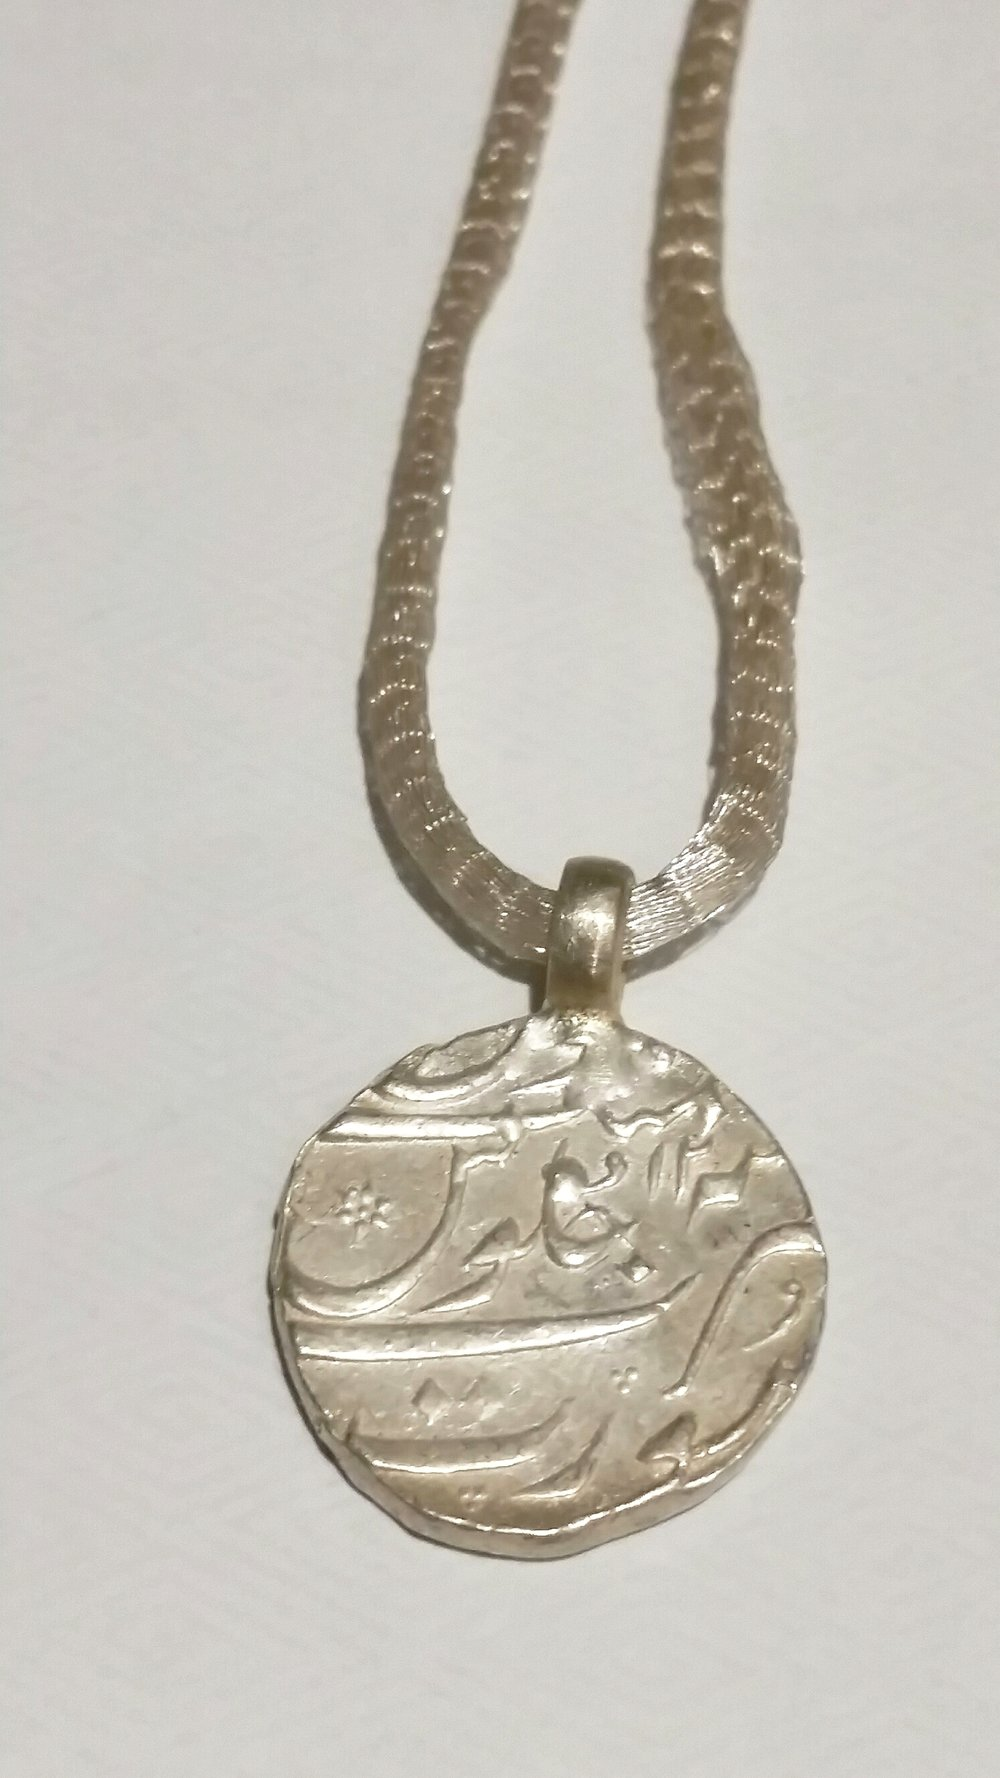 COIN PENDANT 10 MODELLED ON ANCIENT MOGHUL COIN